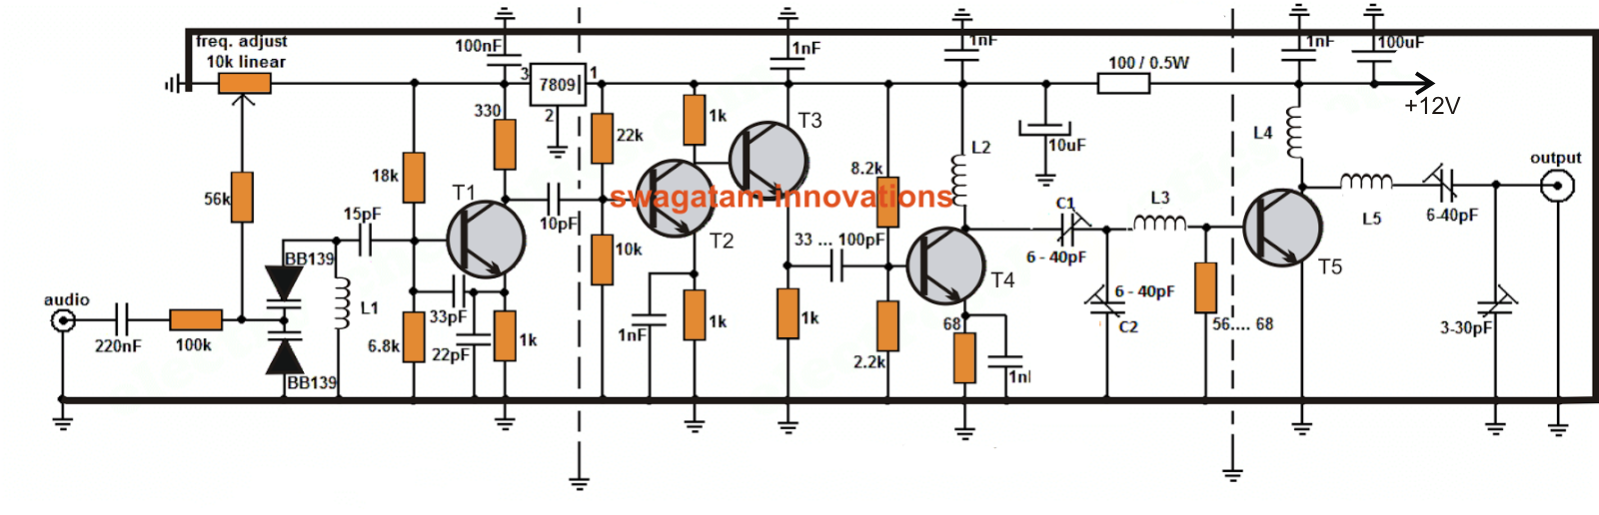 2 5 Km Long Range Fm Transmitter Wiring Diagram As Well Npn And Pnp Transistor On Prox